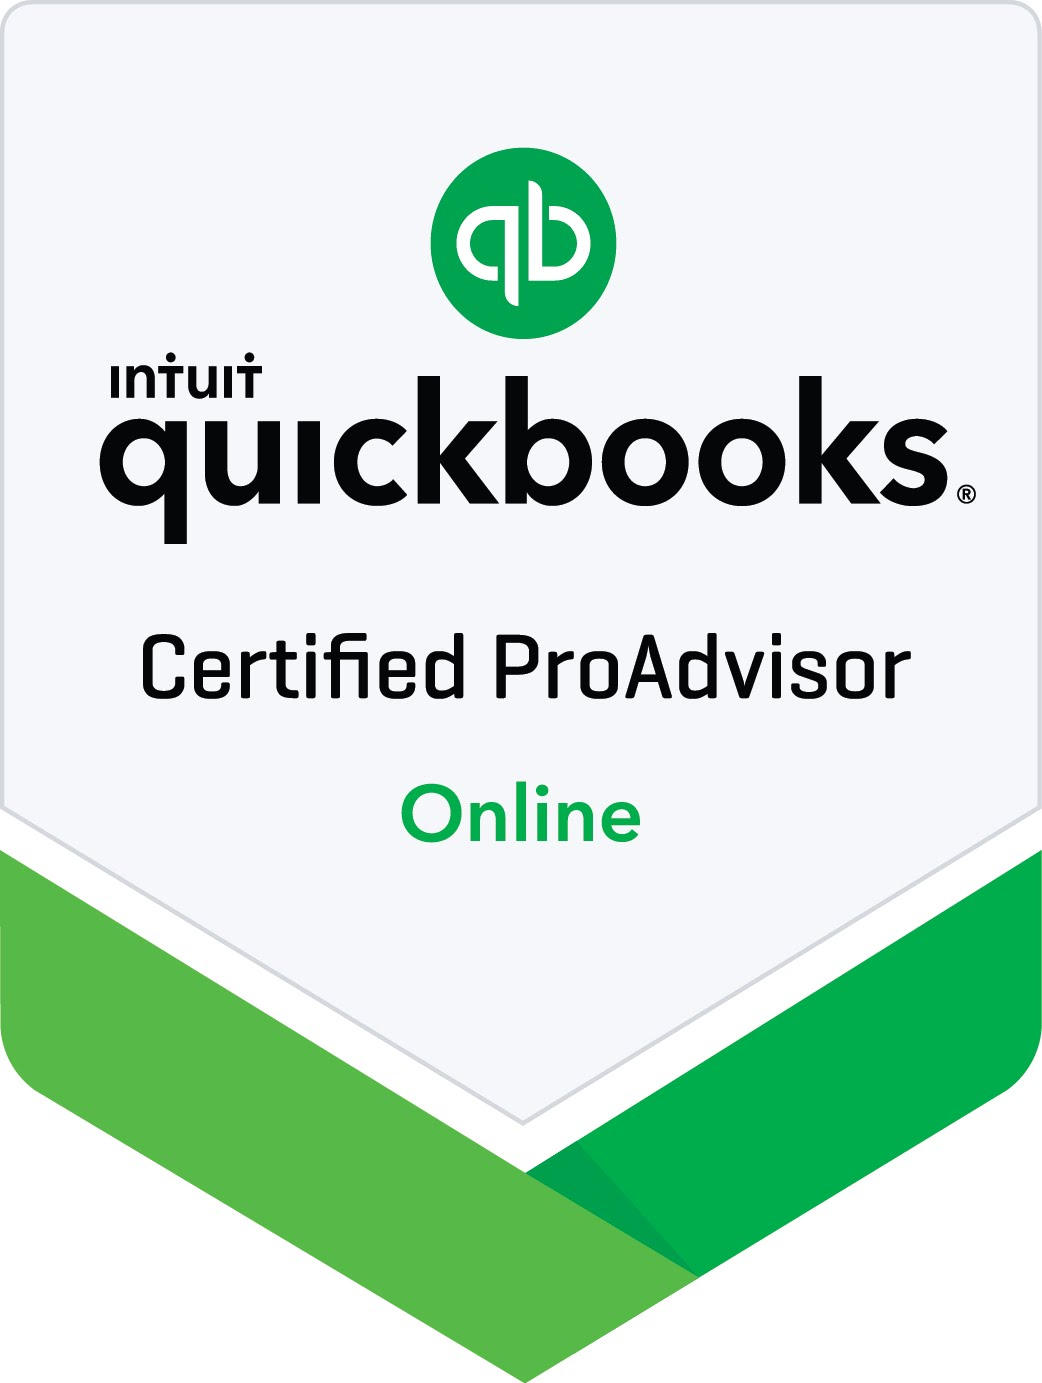 https://sites.google.com/a/bsanl.com/bsanl/our-company/our-staff/Quickbook%20Certificate%20David.jpg?attredirects=0